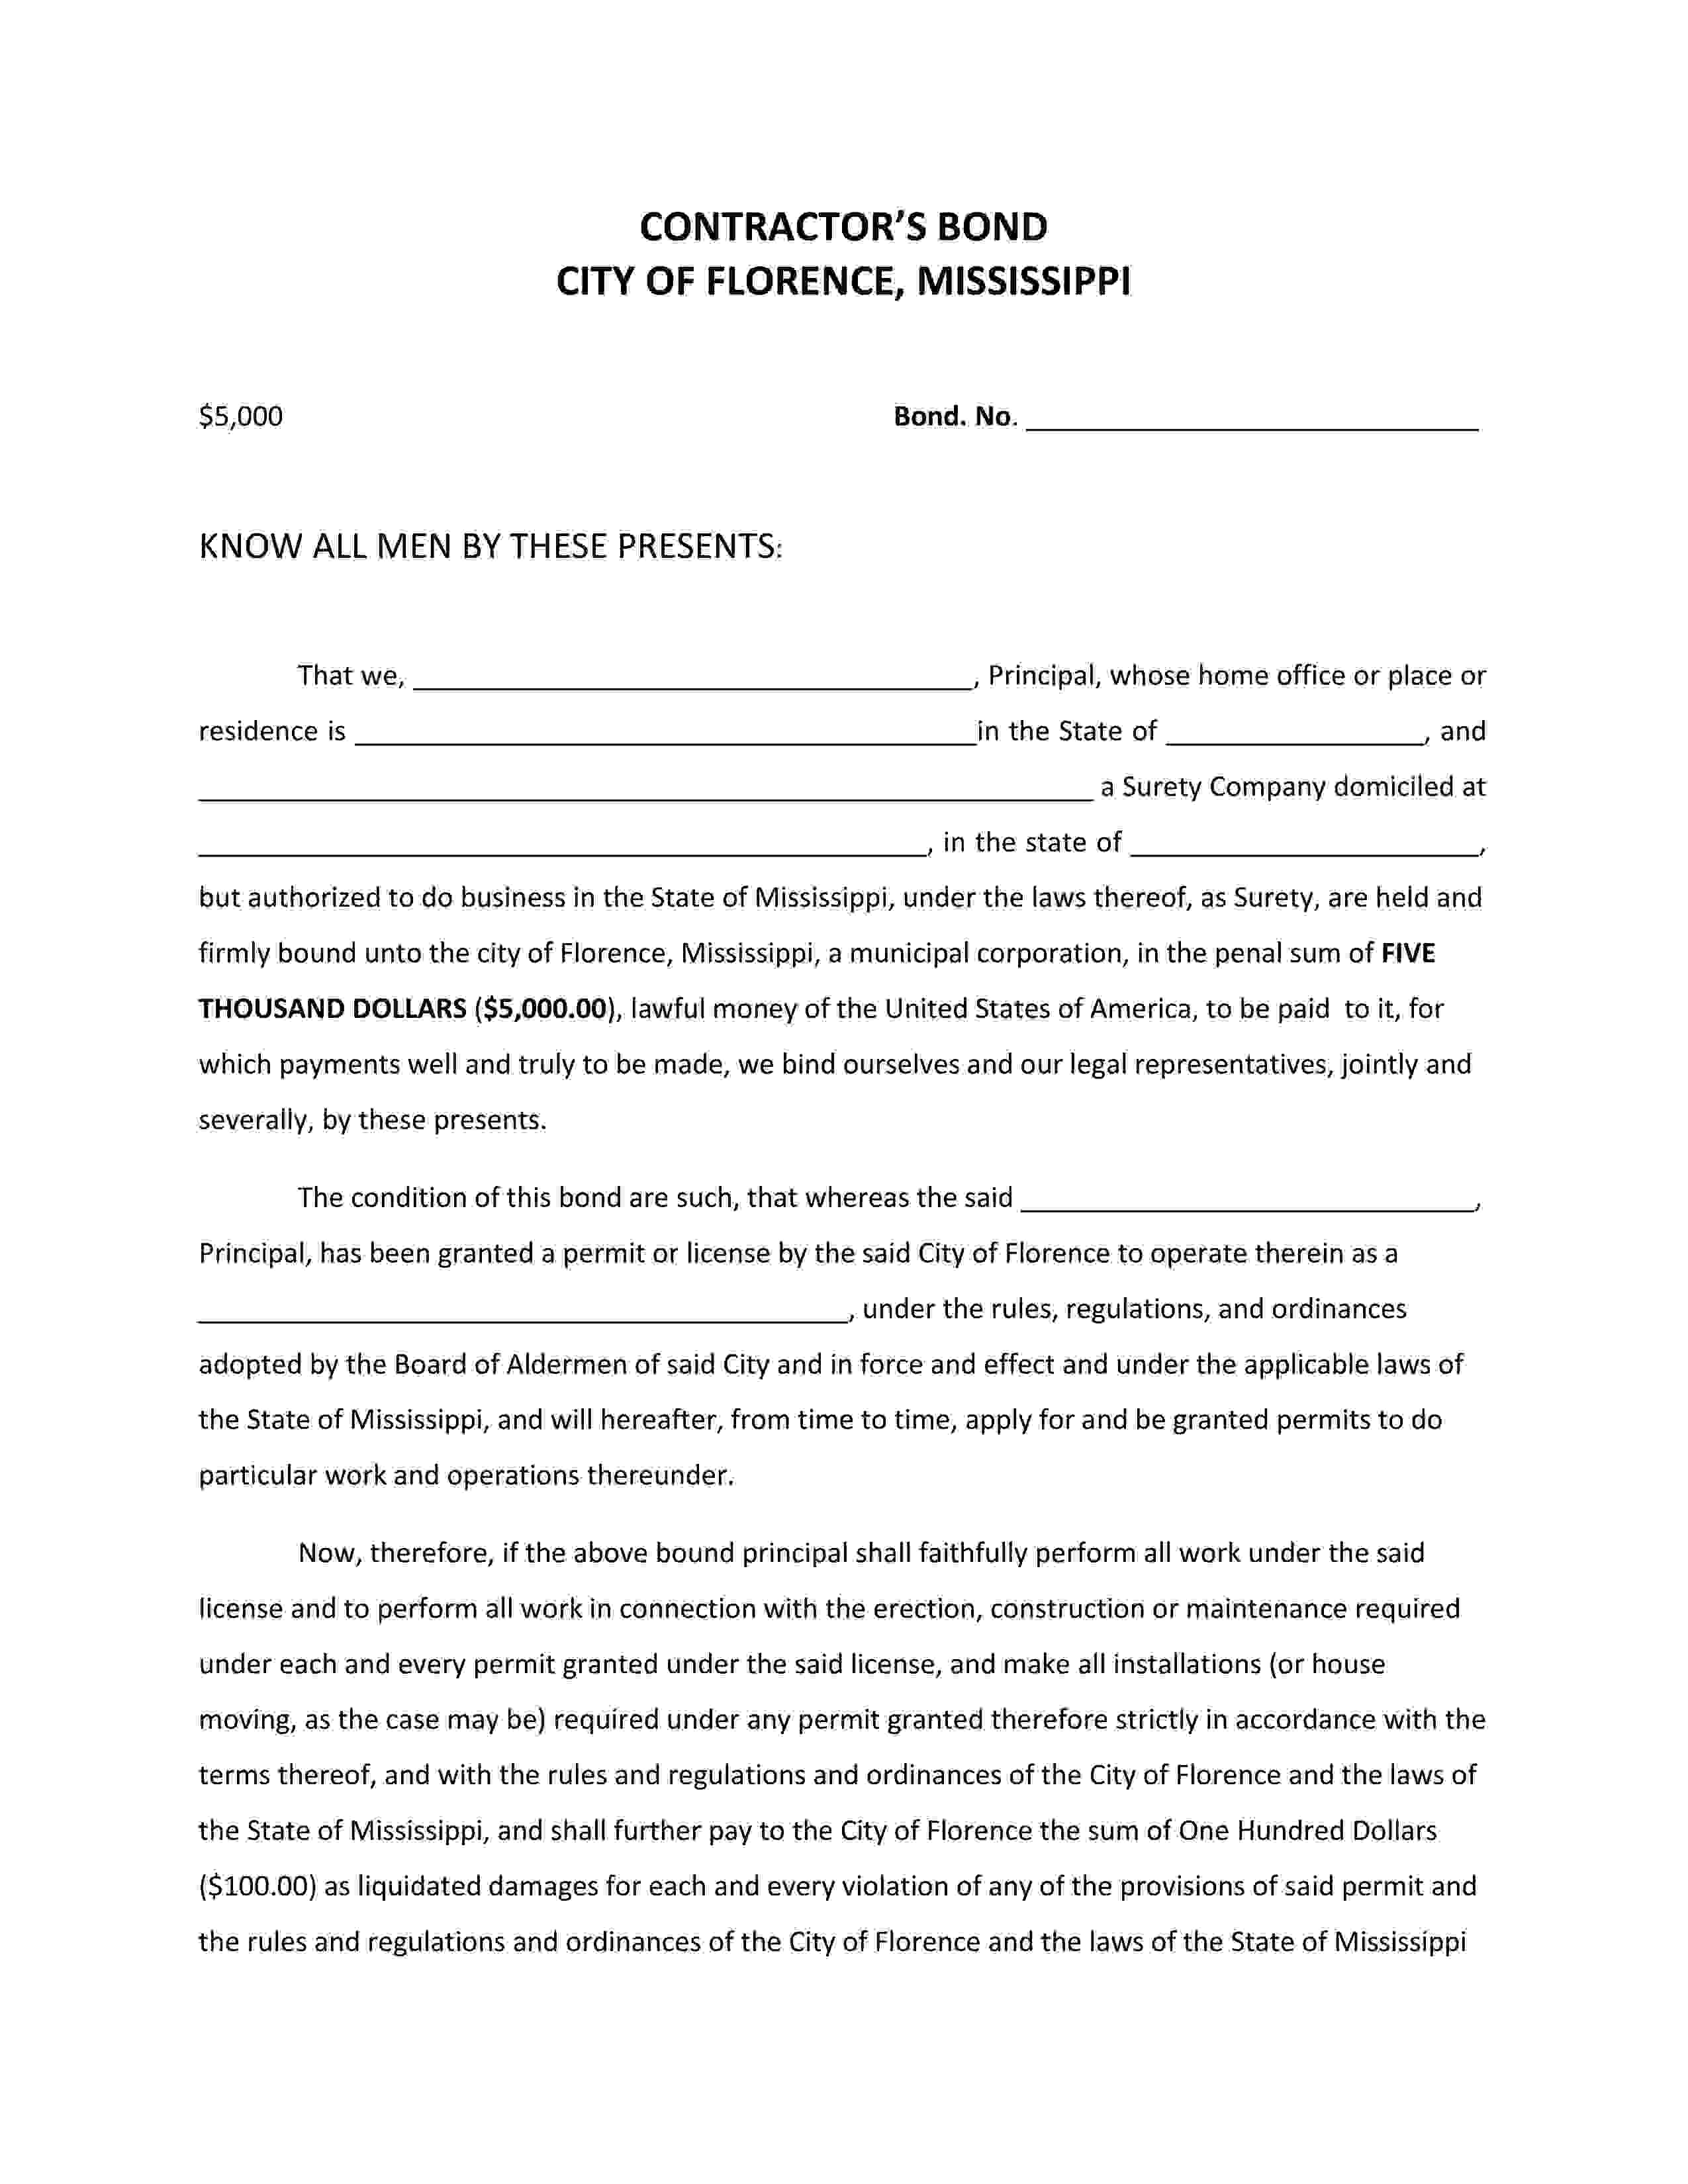 City of Florence Florence - City License/Permit sample image